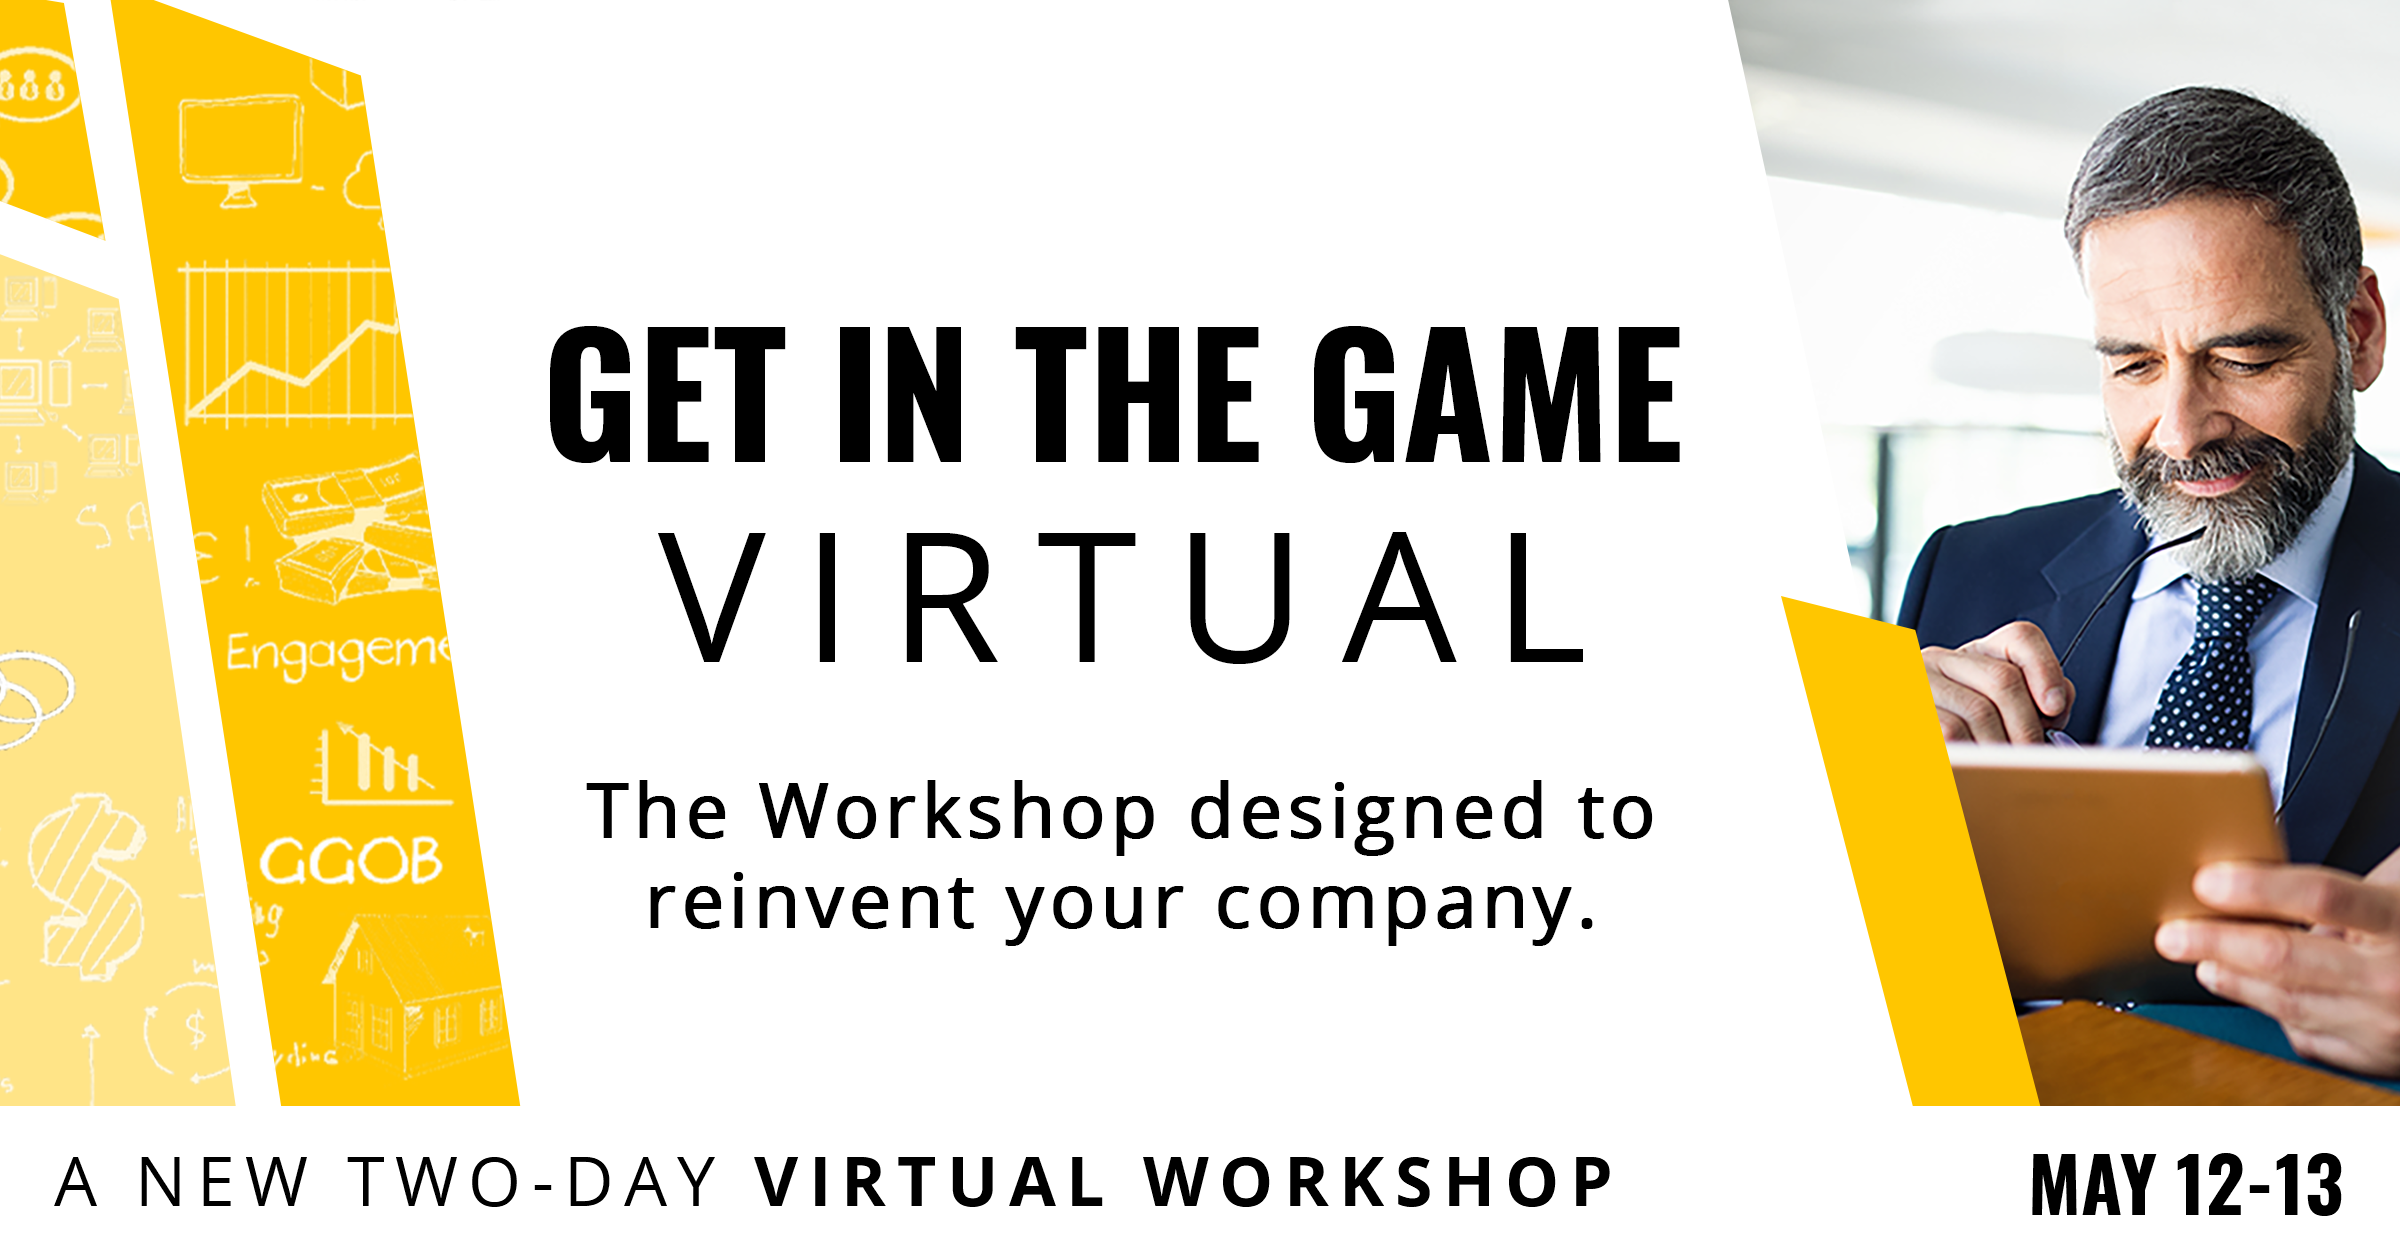 Get in the Game Virtual - FB Event